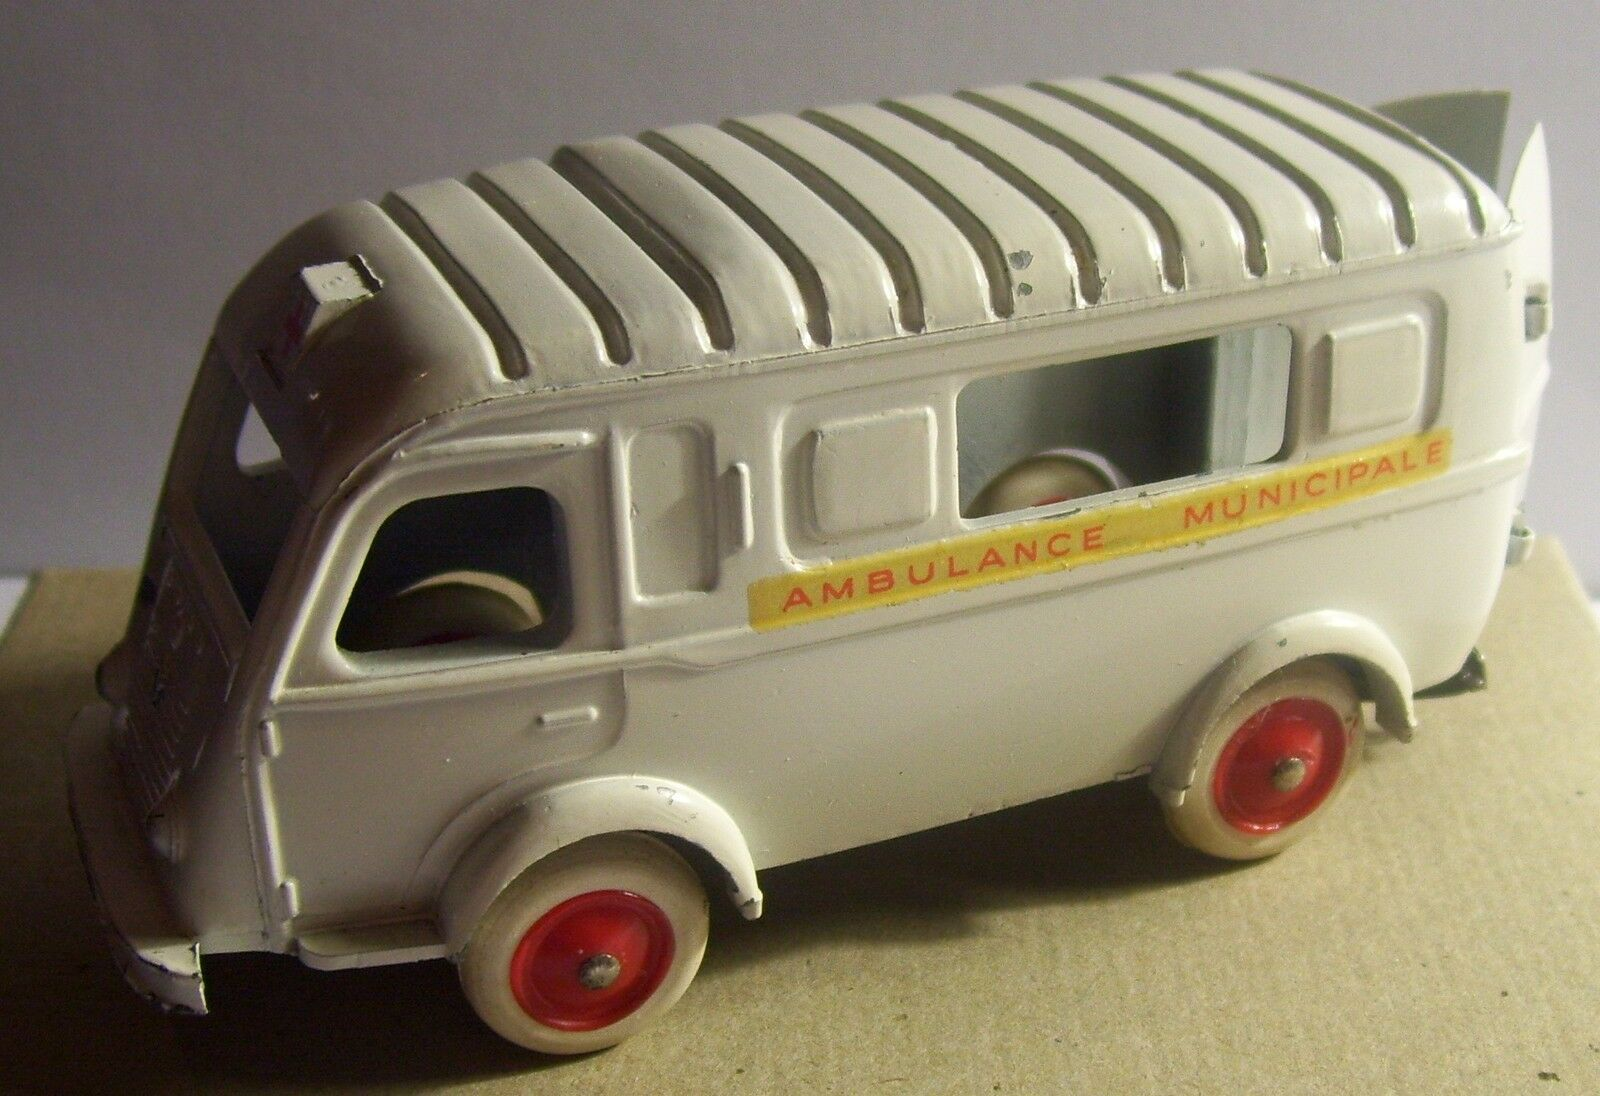 ORIGINAL OLD CIJ RENAULT 1000 kg AMBULANCE MUNICIPALE  3-61 2018 no BOX 1/45